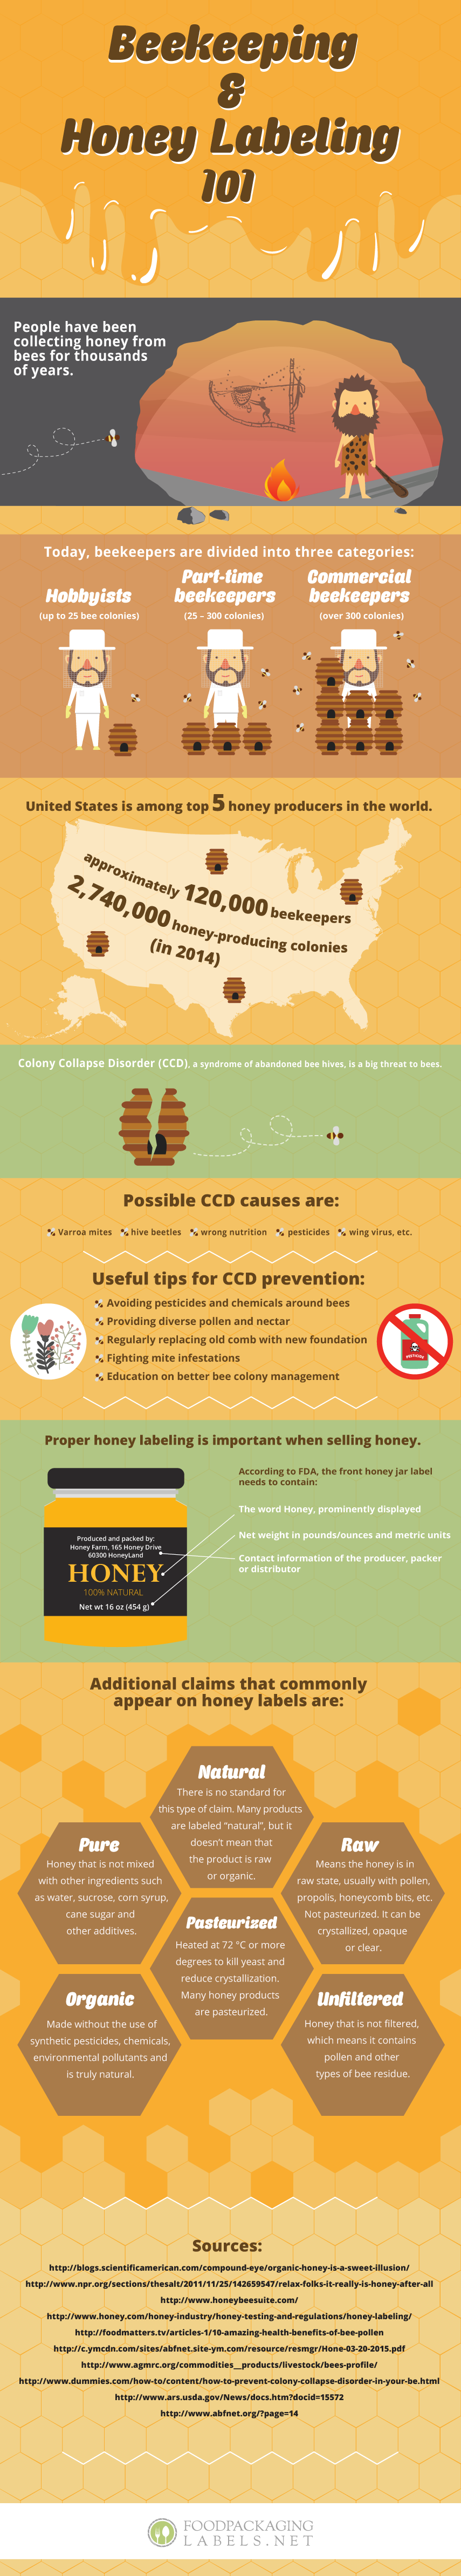 beekeeping-and-honey-labeling-infographic